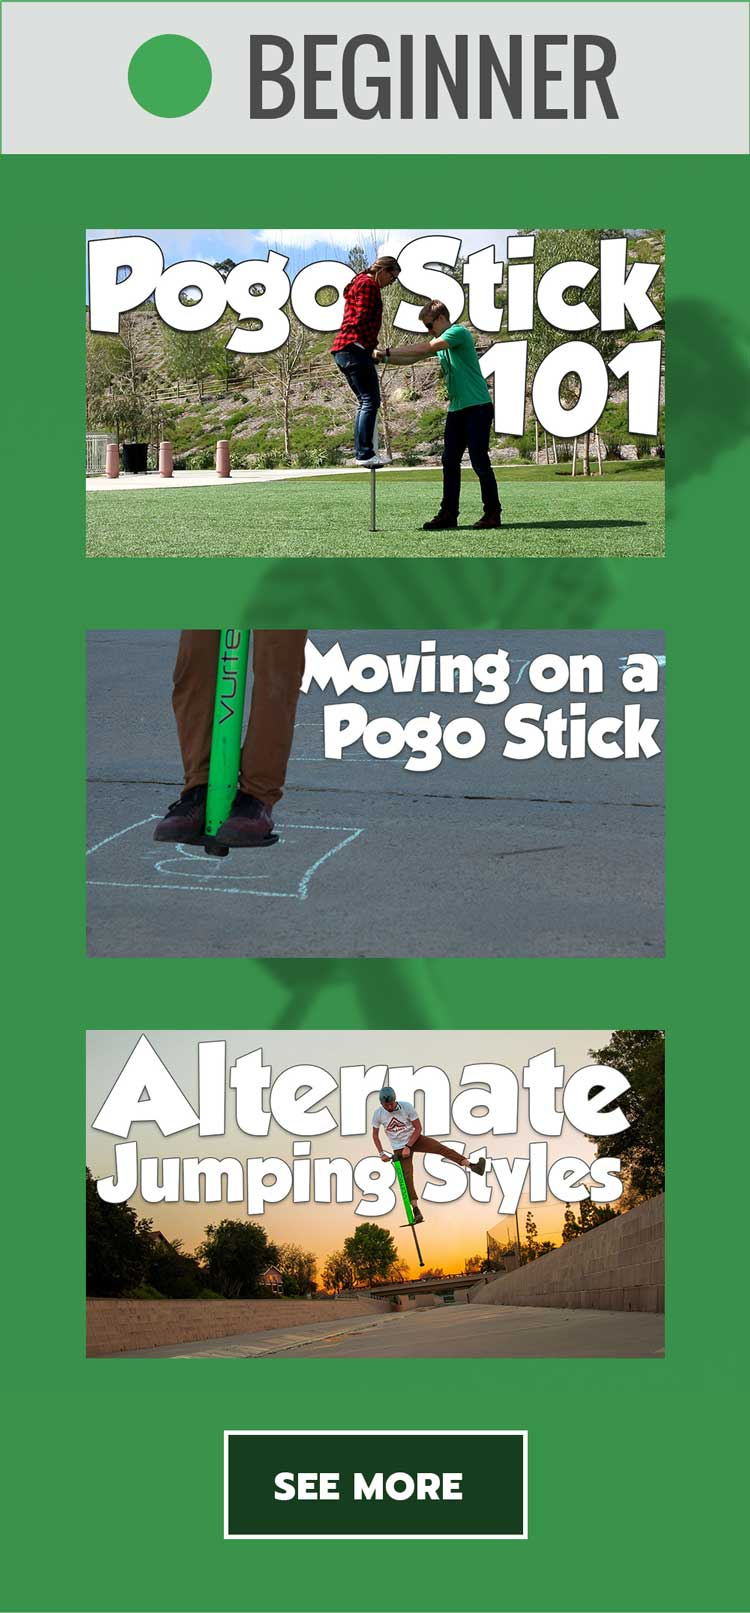 Vurtego Pogo Stick - Beginner Tutorial Videos